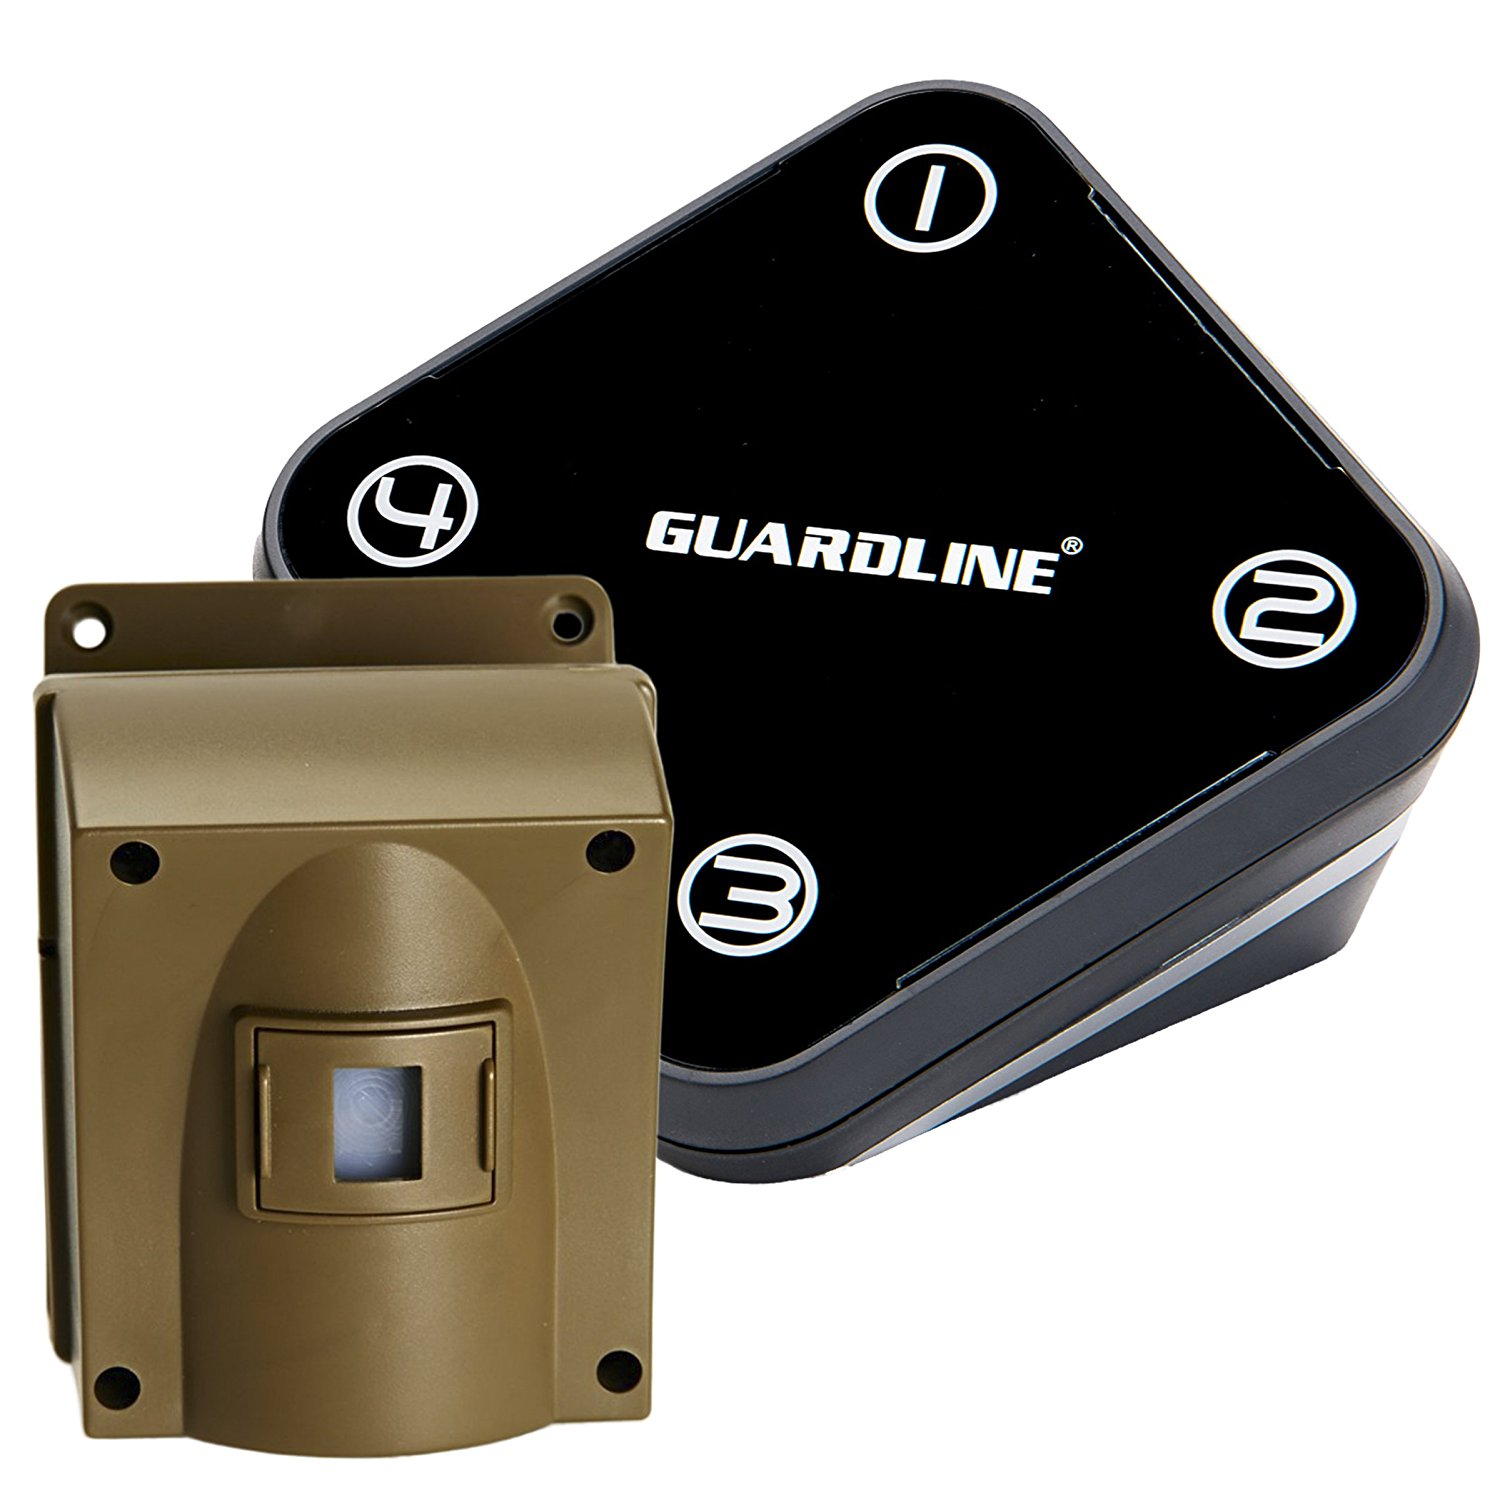 Guardline Wireless Driveway Alarm- Top Rated Outdoor Weatherproof Motion Sensor & Detector- Best DIY Security Alert System- Stay Safe & Protect Home, Outside Property, Yard, Garage, Gate, Pool